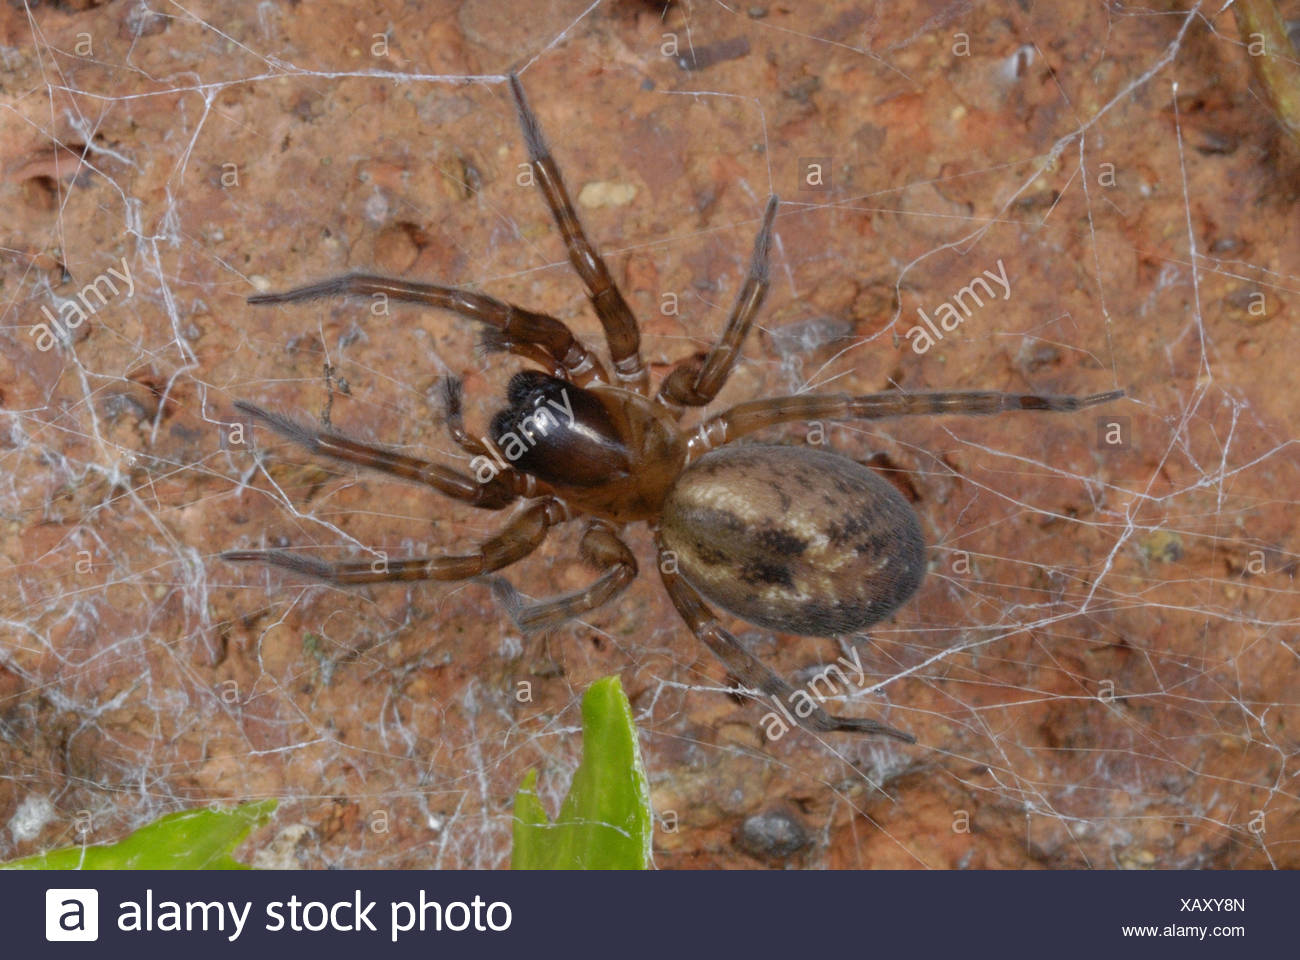 Garden Lace-webbed Spider (Amaurobius similis) adult female, in web on brick wall, in garden, Gorseinon, West Glamorgan, South - Stock Image